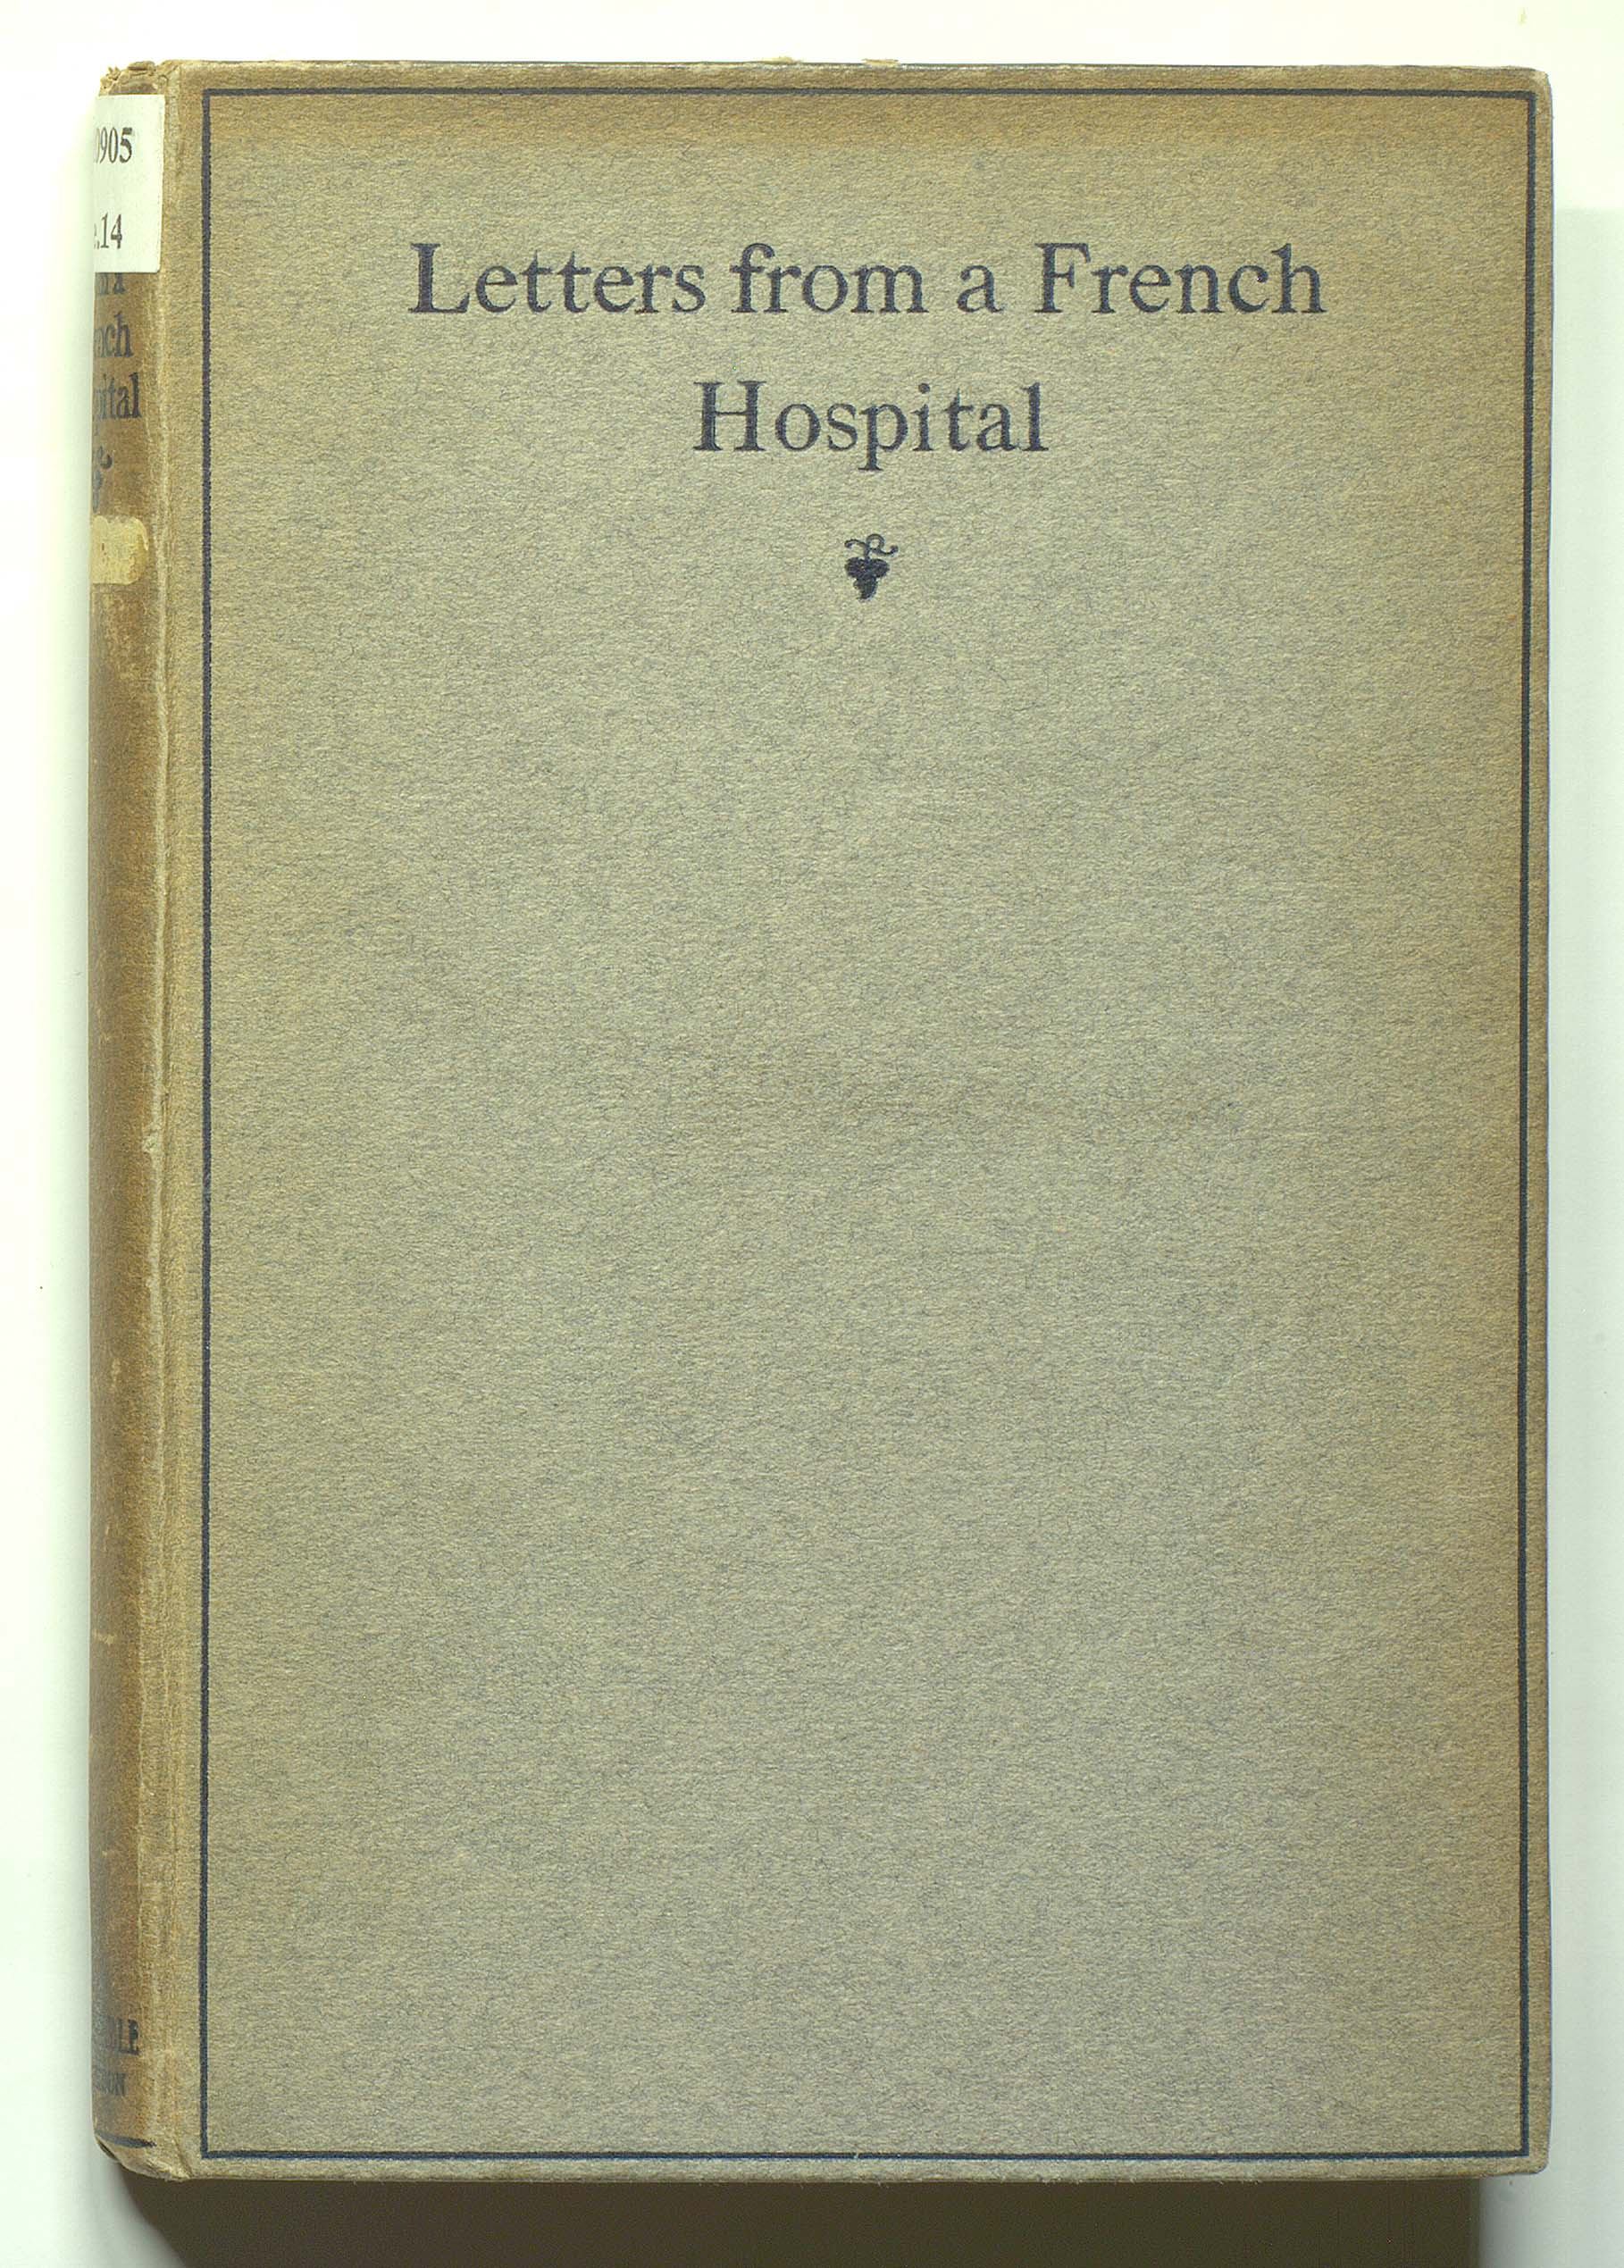 'Letters from a French Hospital' chronicles the experiences of a young English woman working in a hospital for Allied soldiers in France between July 1916 and September 1917.